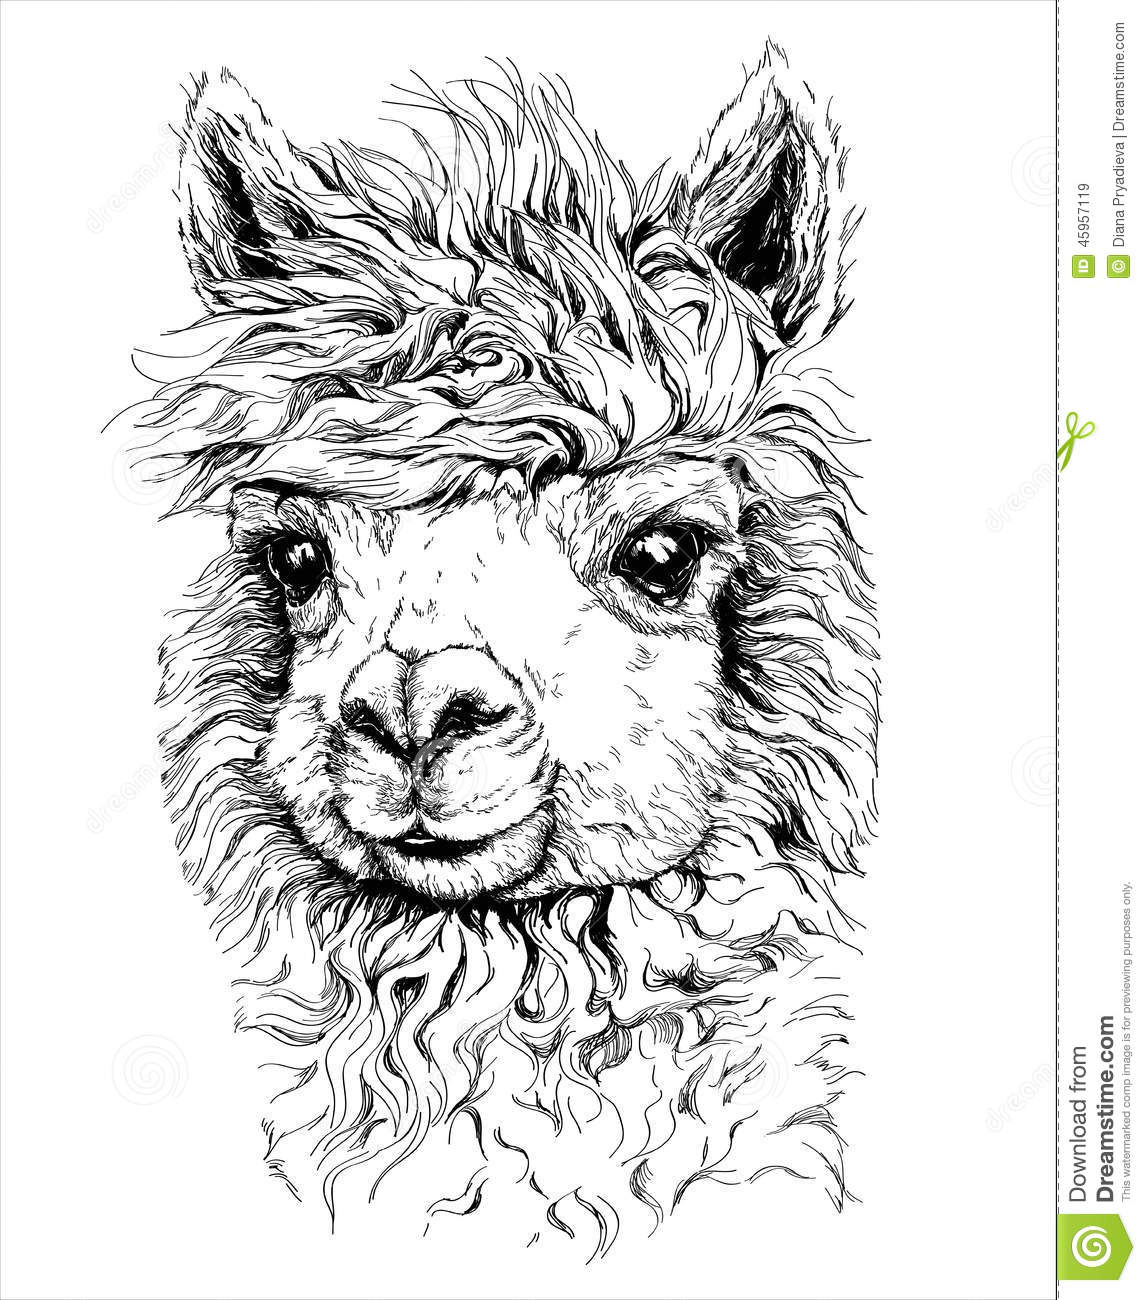 Realistic Sketch Of LAMA Alpaca, Black And White Drawing ...